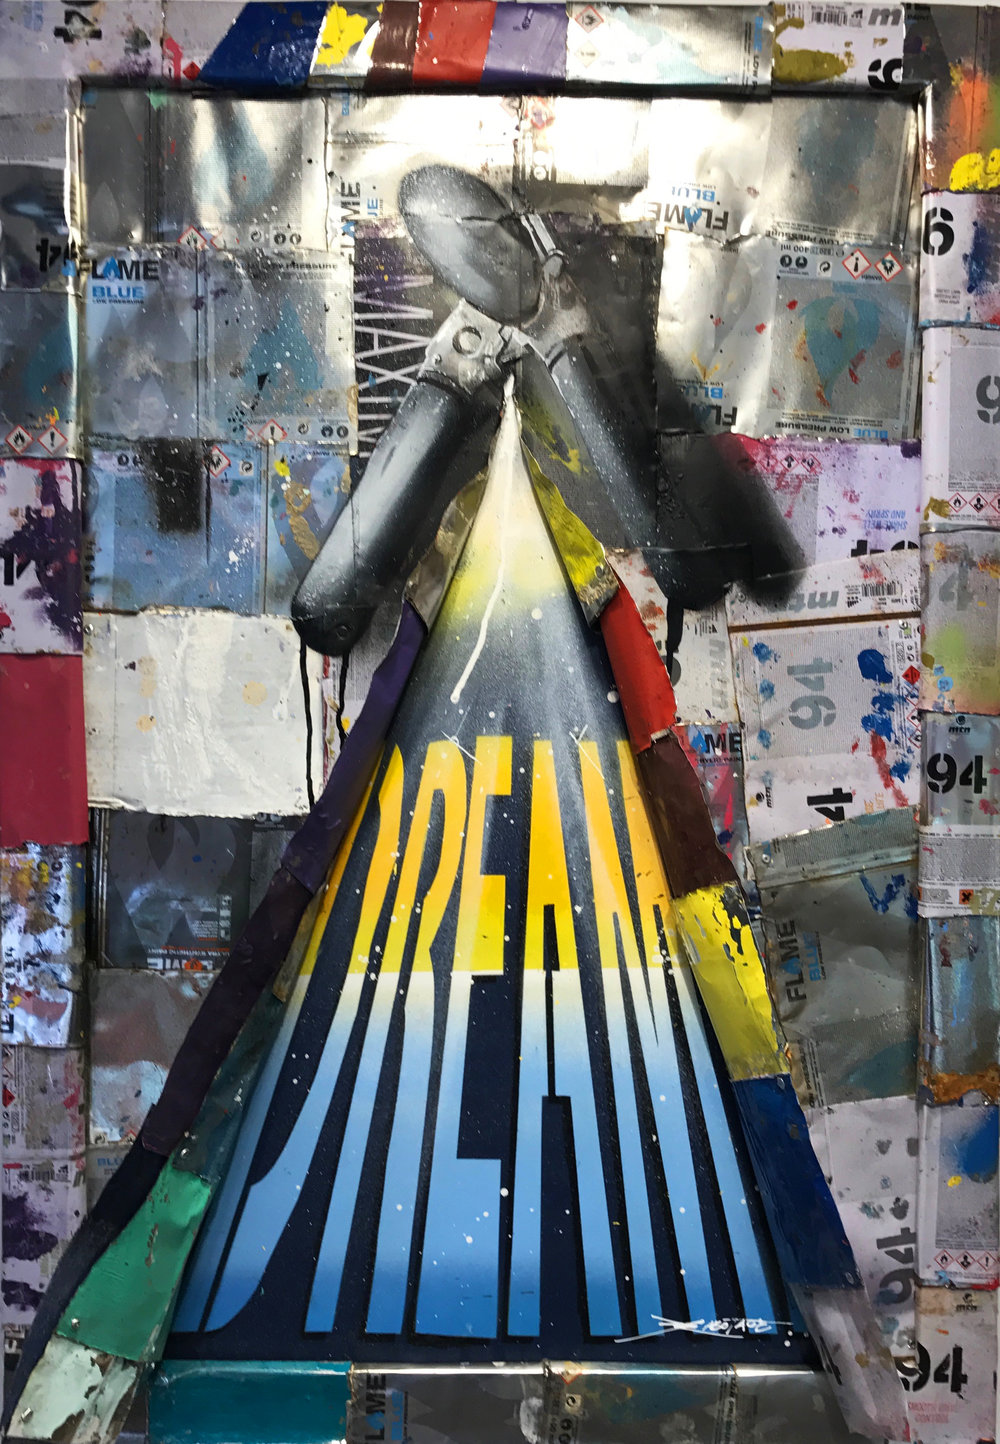 """Can Open Dreams"" Stencil Mixed Media Spray Paint and Graffiti Markers 60 x 90 cm 2017"